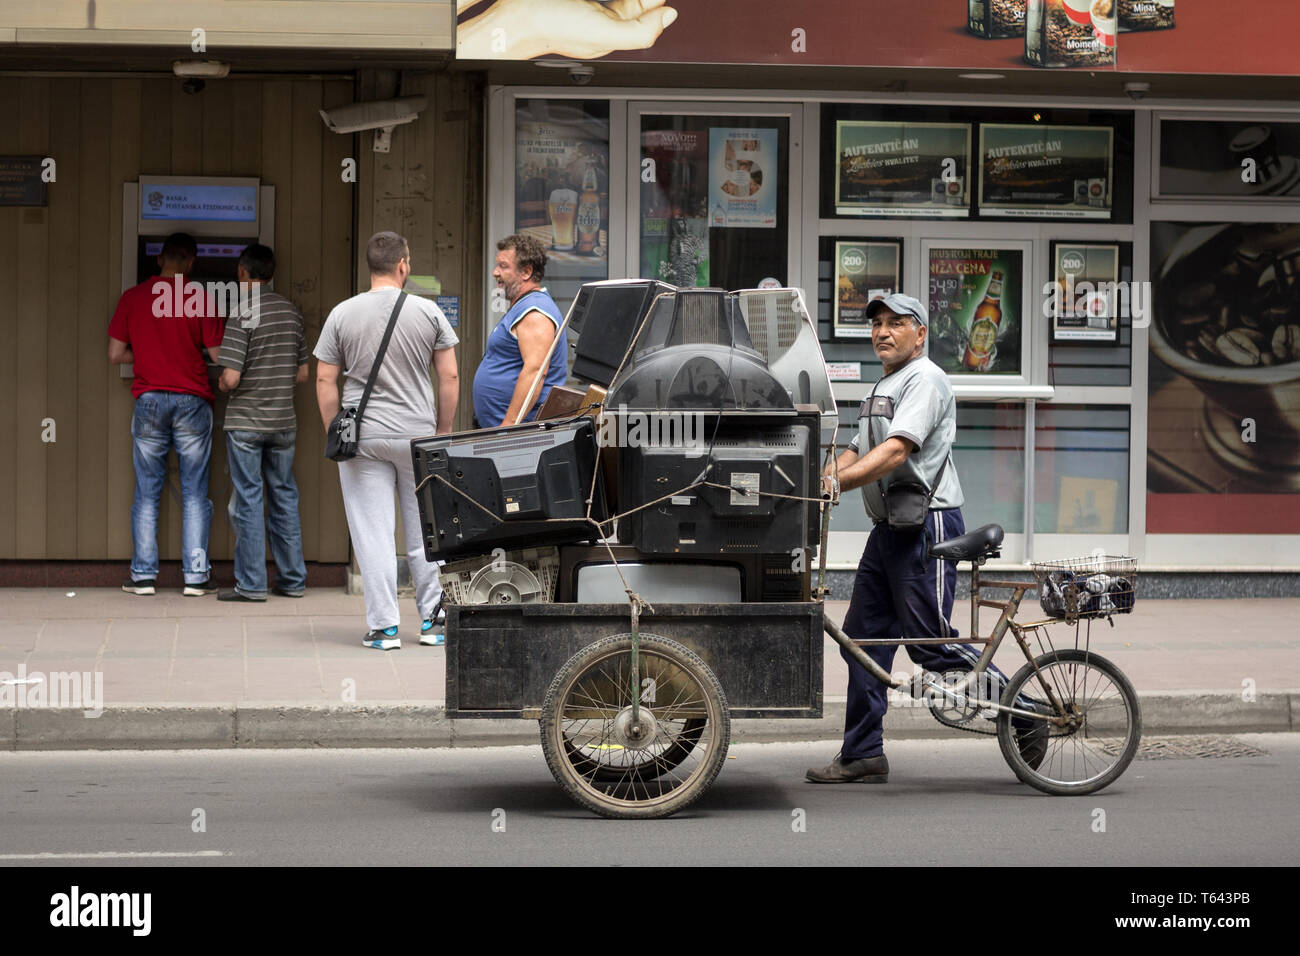 NIS, SERBIA - MAY 9, 2015: Old Man from the Roma community buying old and obsolete CRT Cathod Television Sets, as well as other electronic devoces to  - Stock Image